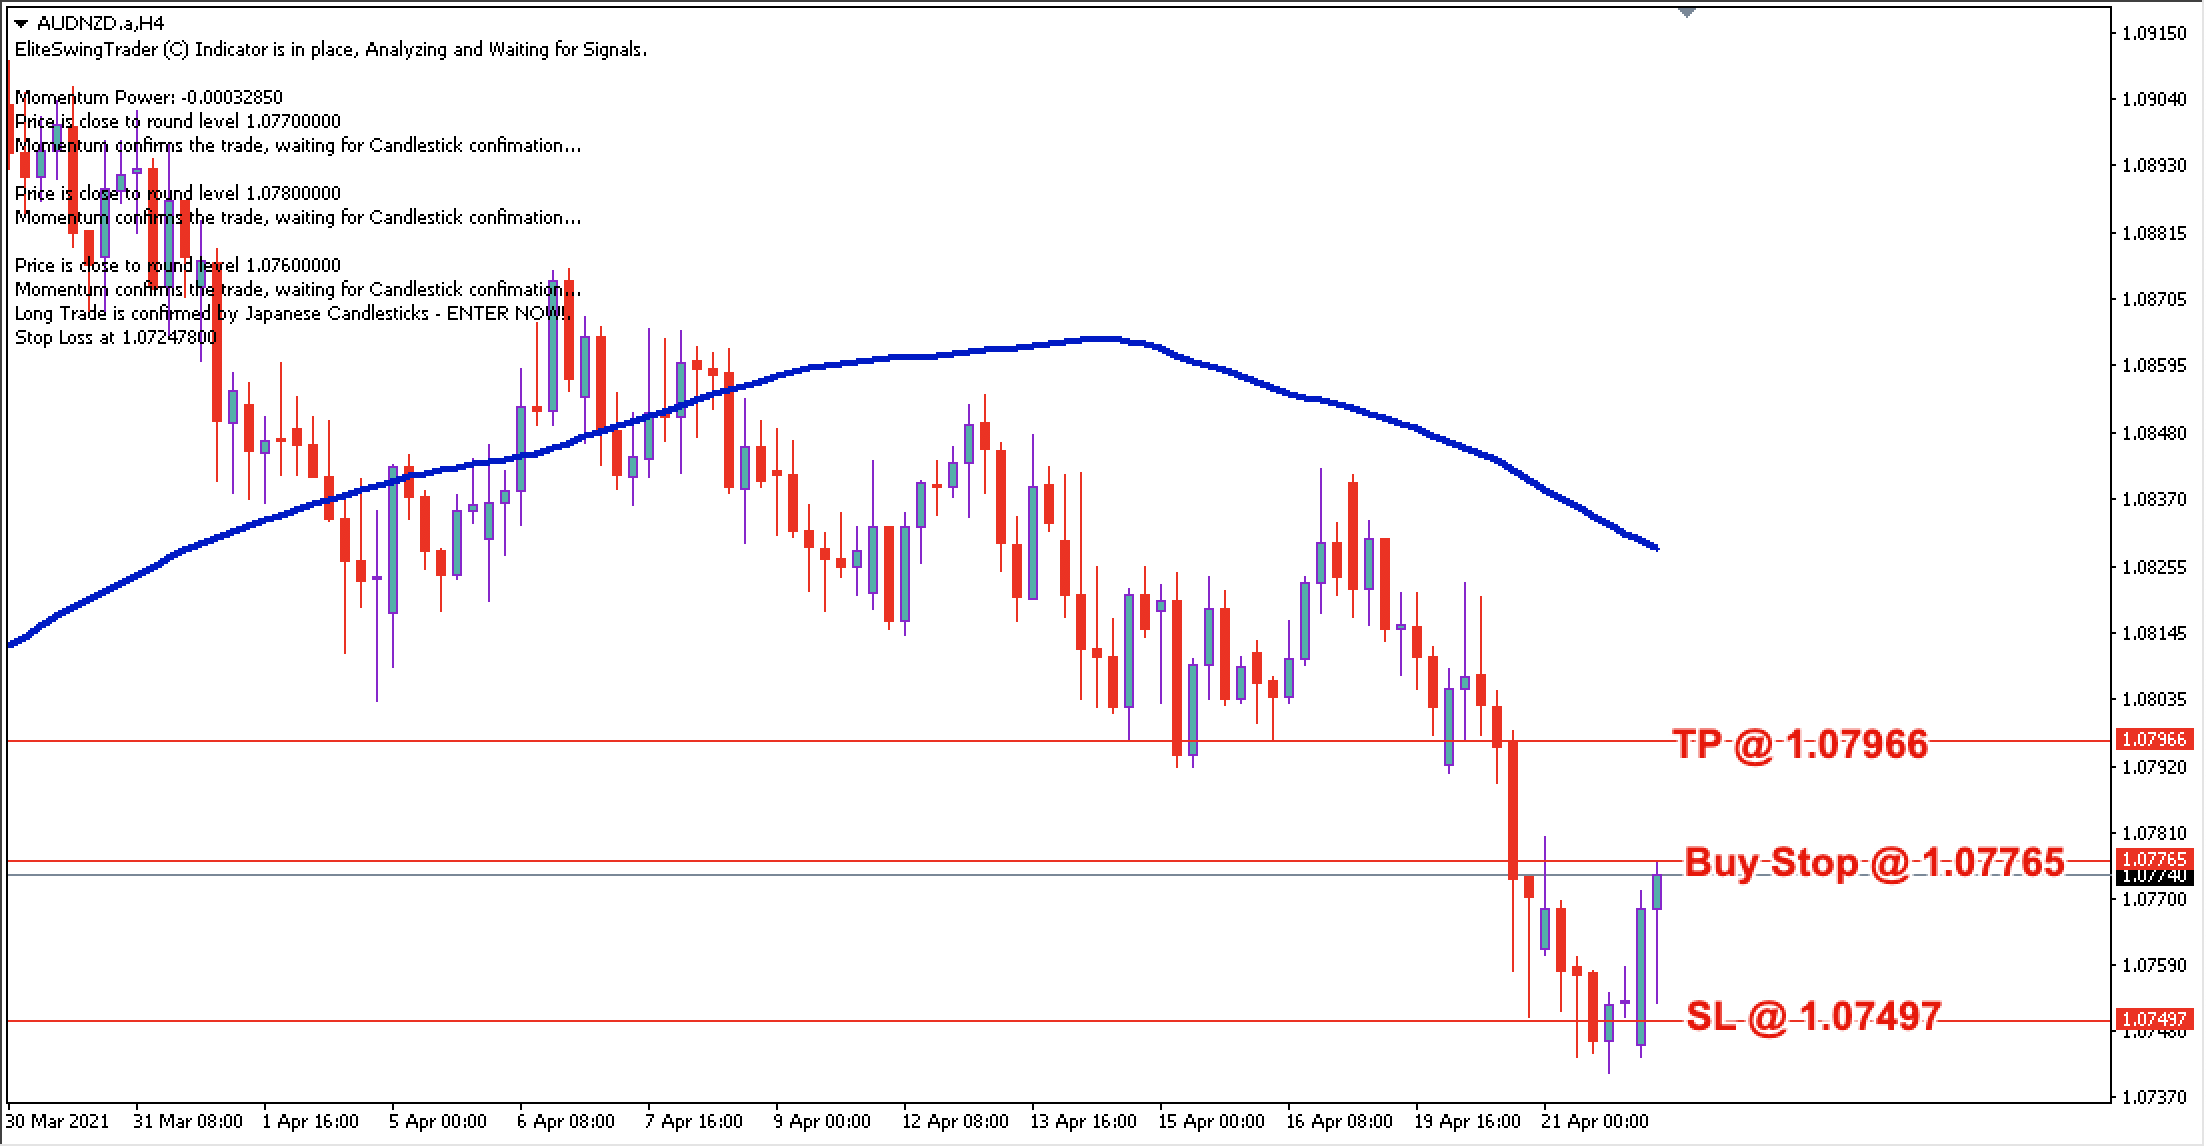 AUD/NZD Daily Price Forecast - 22nd April 2021